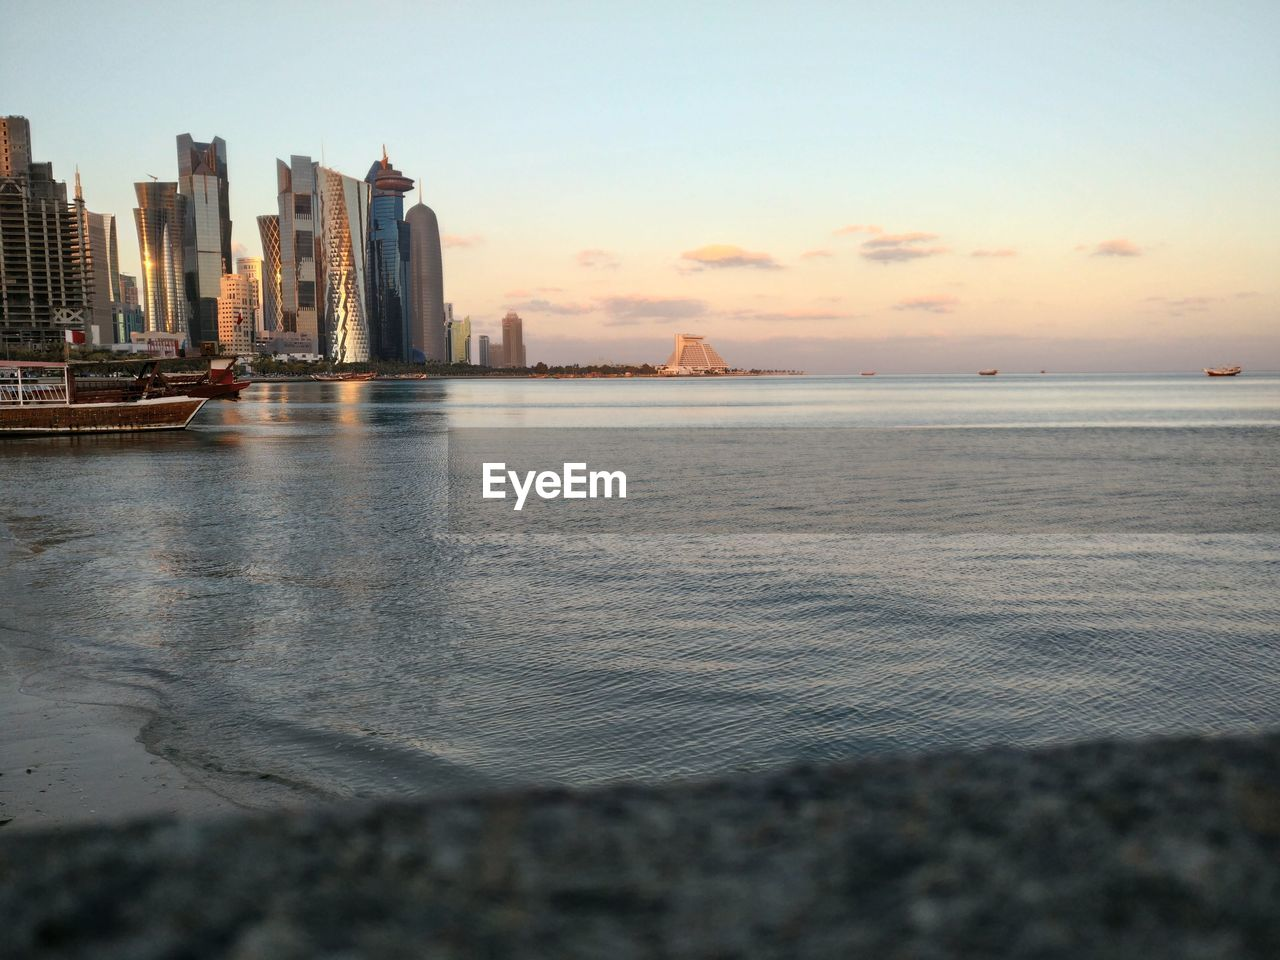 sky, water, built structure, building exterior, architecture, sea, city, skyscraper, office building exterior, urban skyline, nature, landscape, sunset, building, waterfront, scenics - nature, no people, cityscape, beach, outdoors, horizon over water, financial district